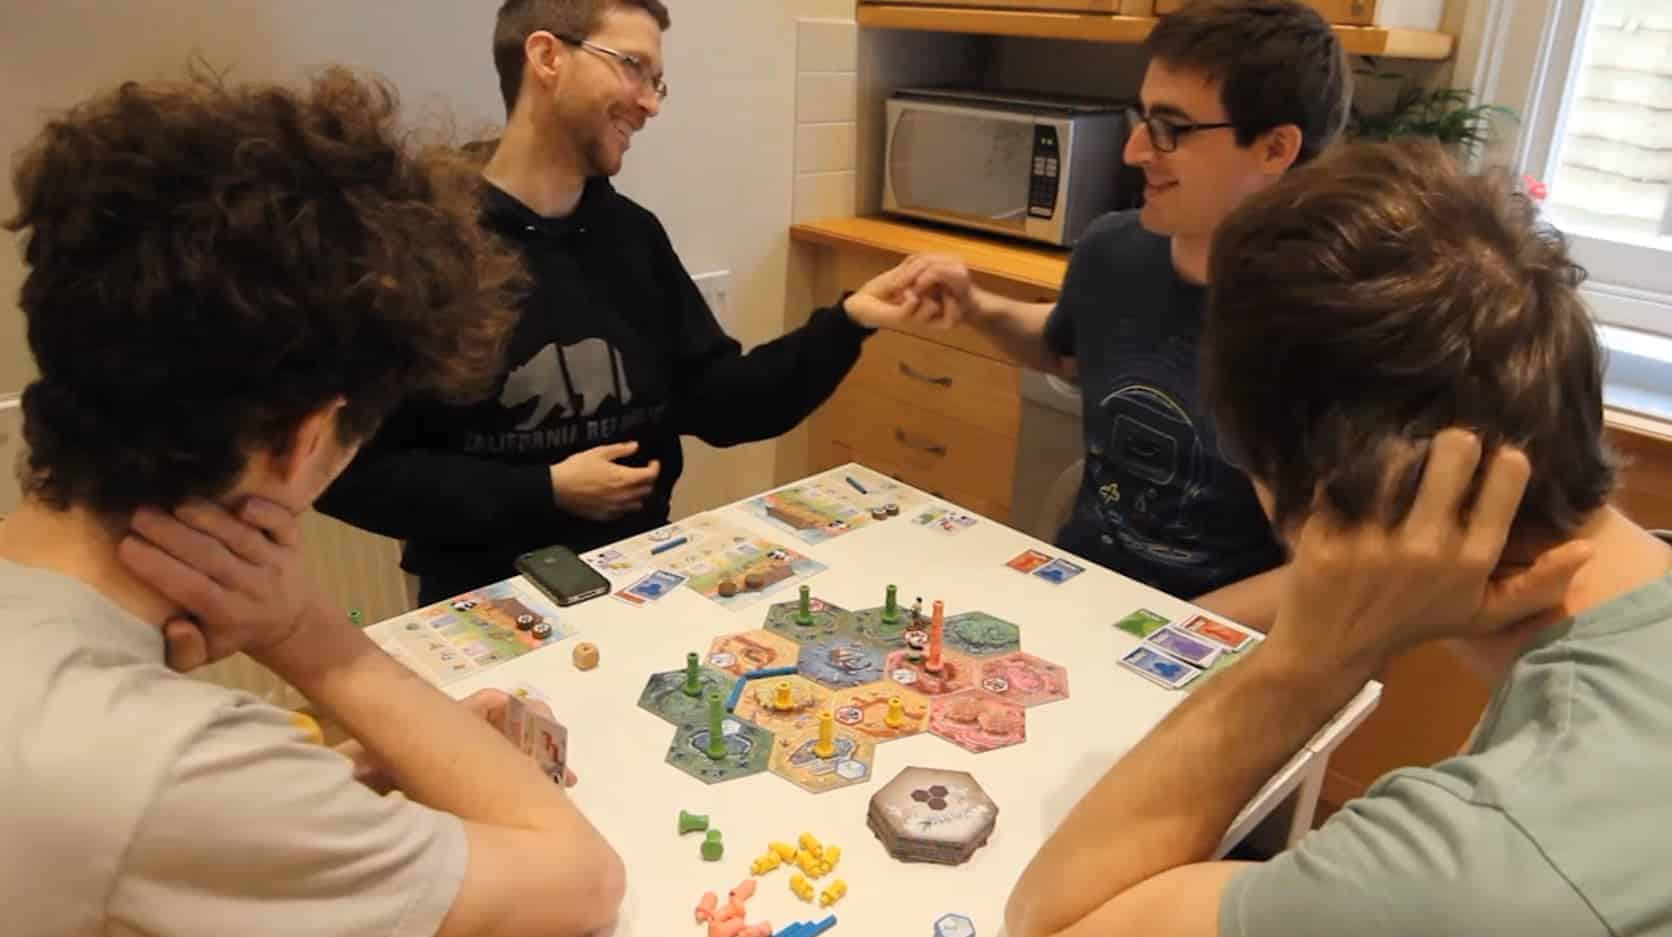 The Opener: Takenoko and a Hot Toddy